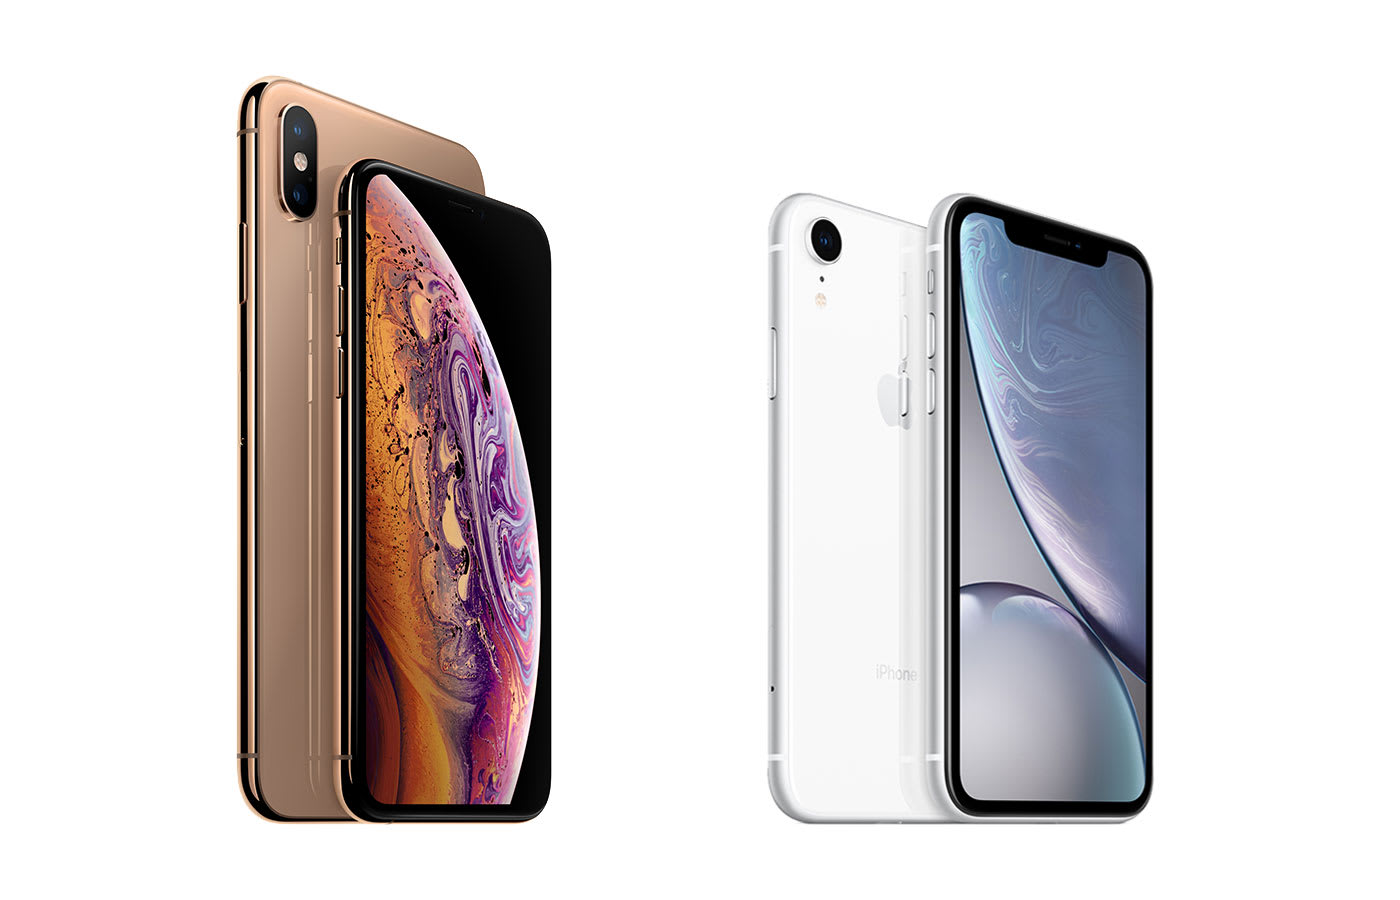 new styles a136e b44b1 Comparing the iPhone Xs, iPhone Xs Max and iPhone Xr